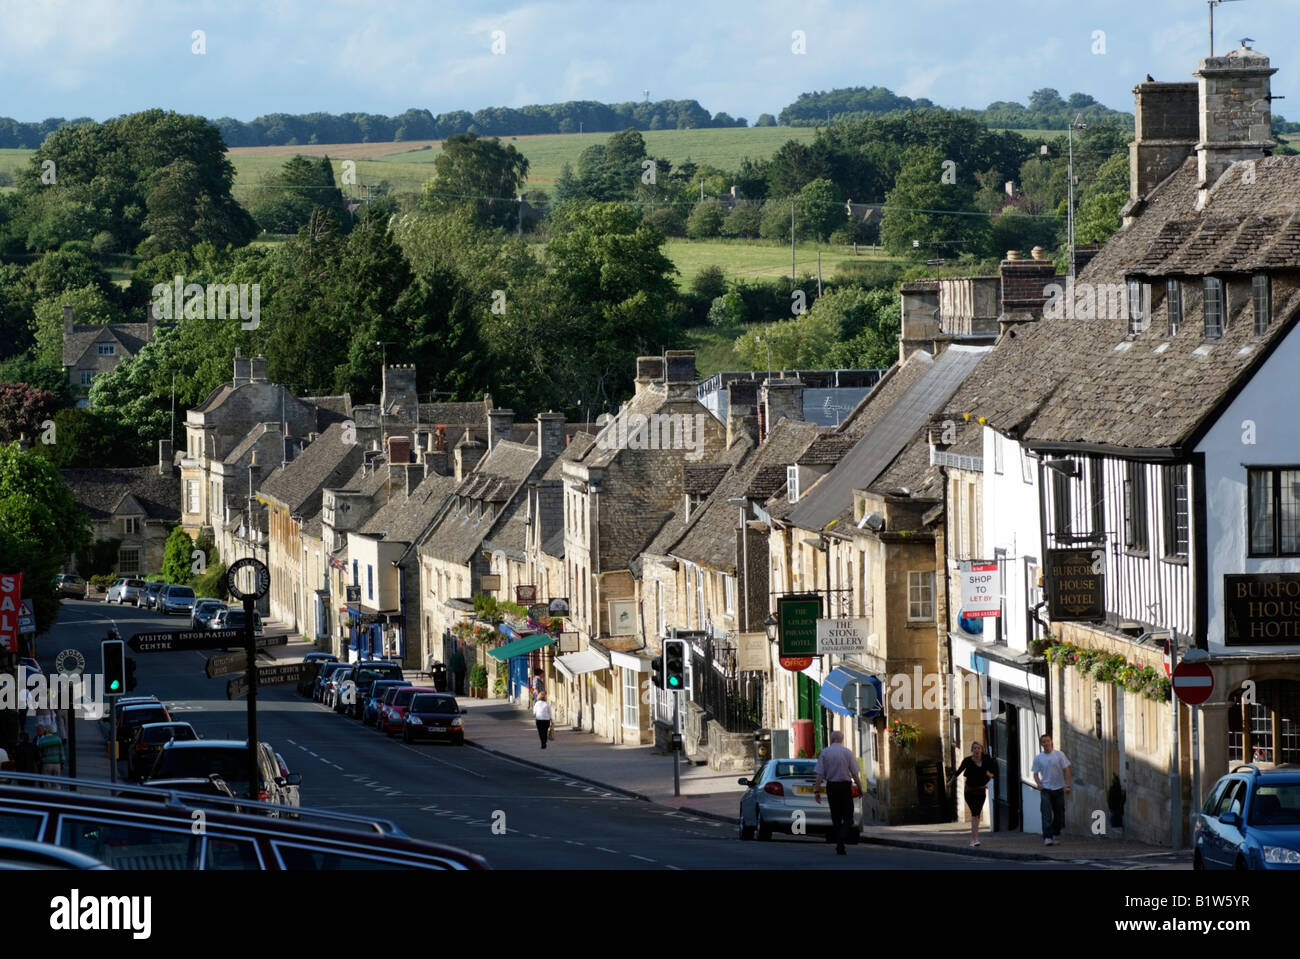 Burford a Cotswold town in Oxfordshire England UK - Stock Image